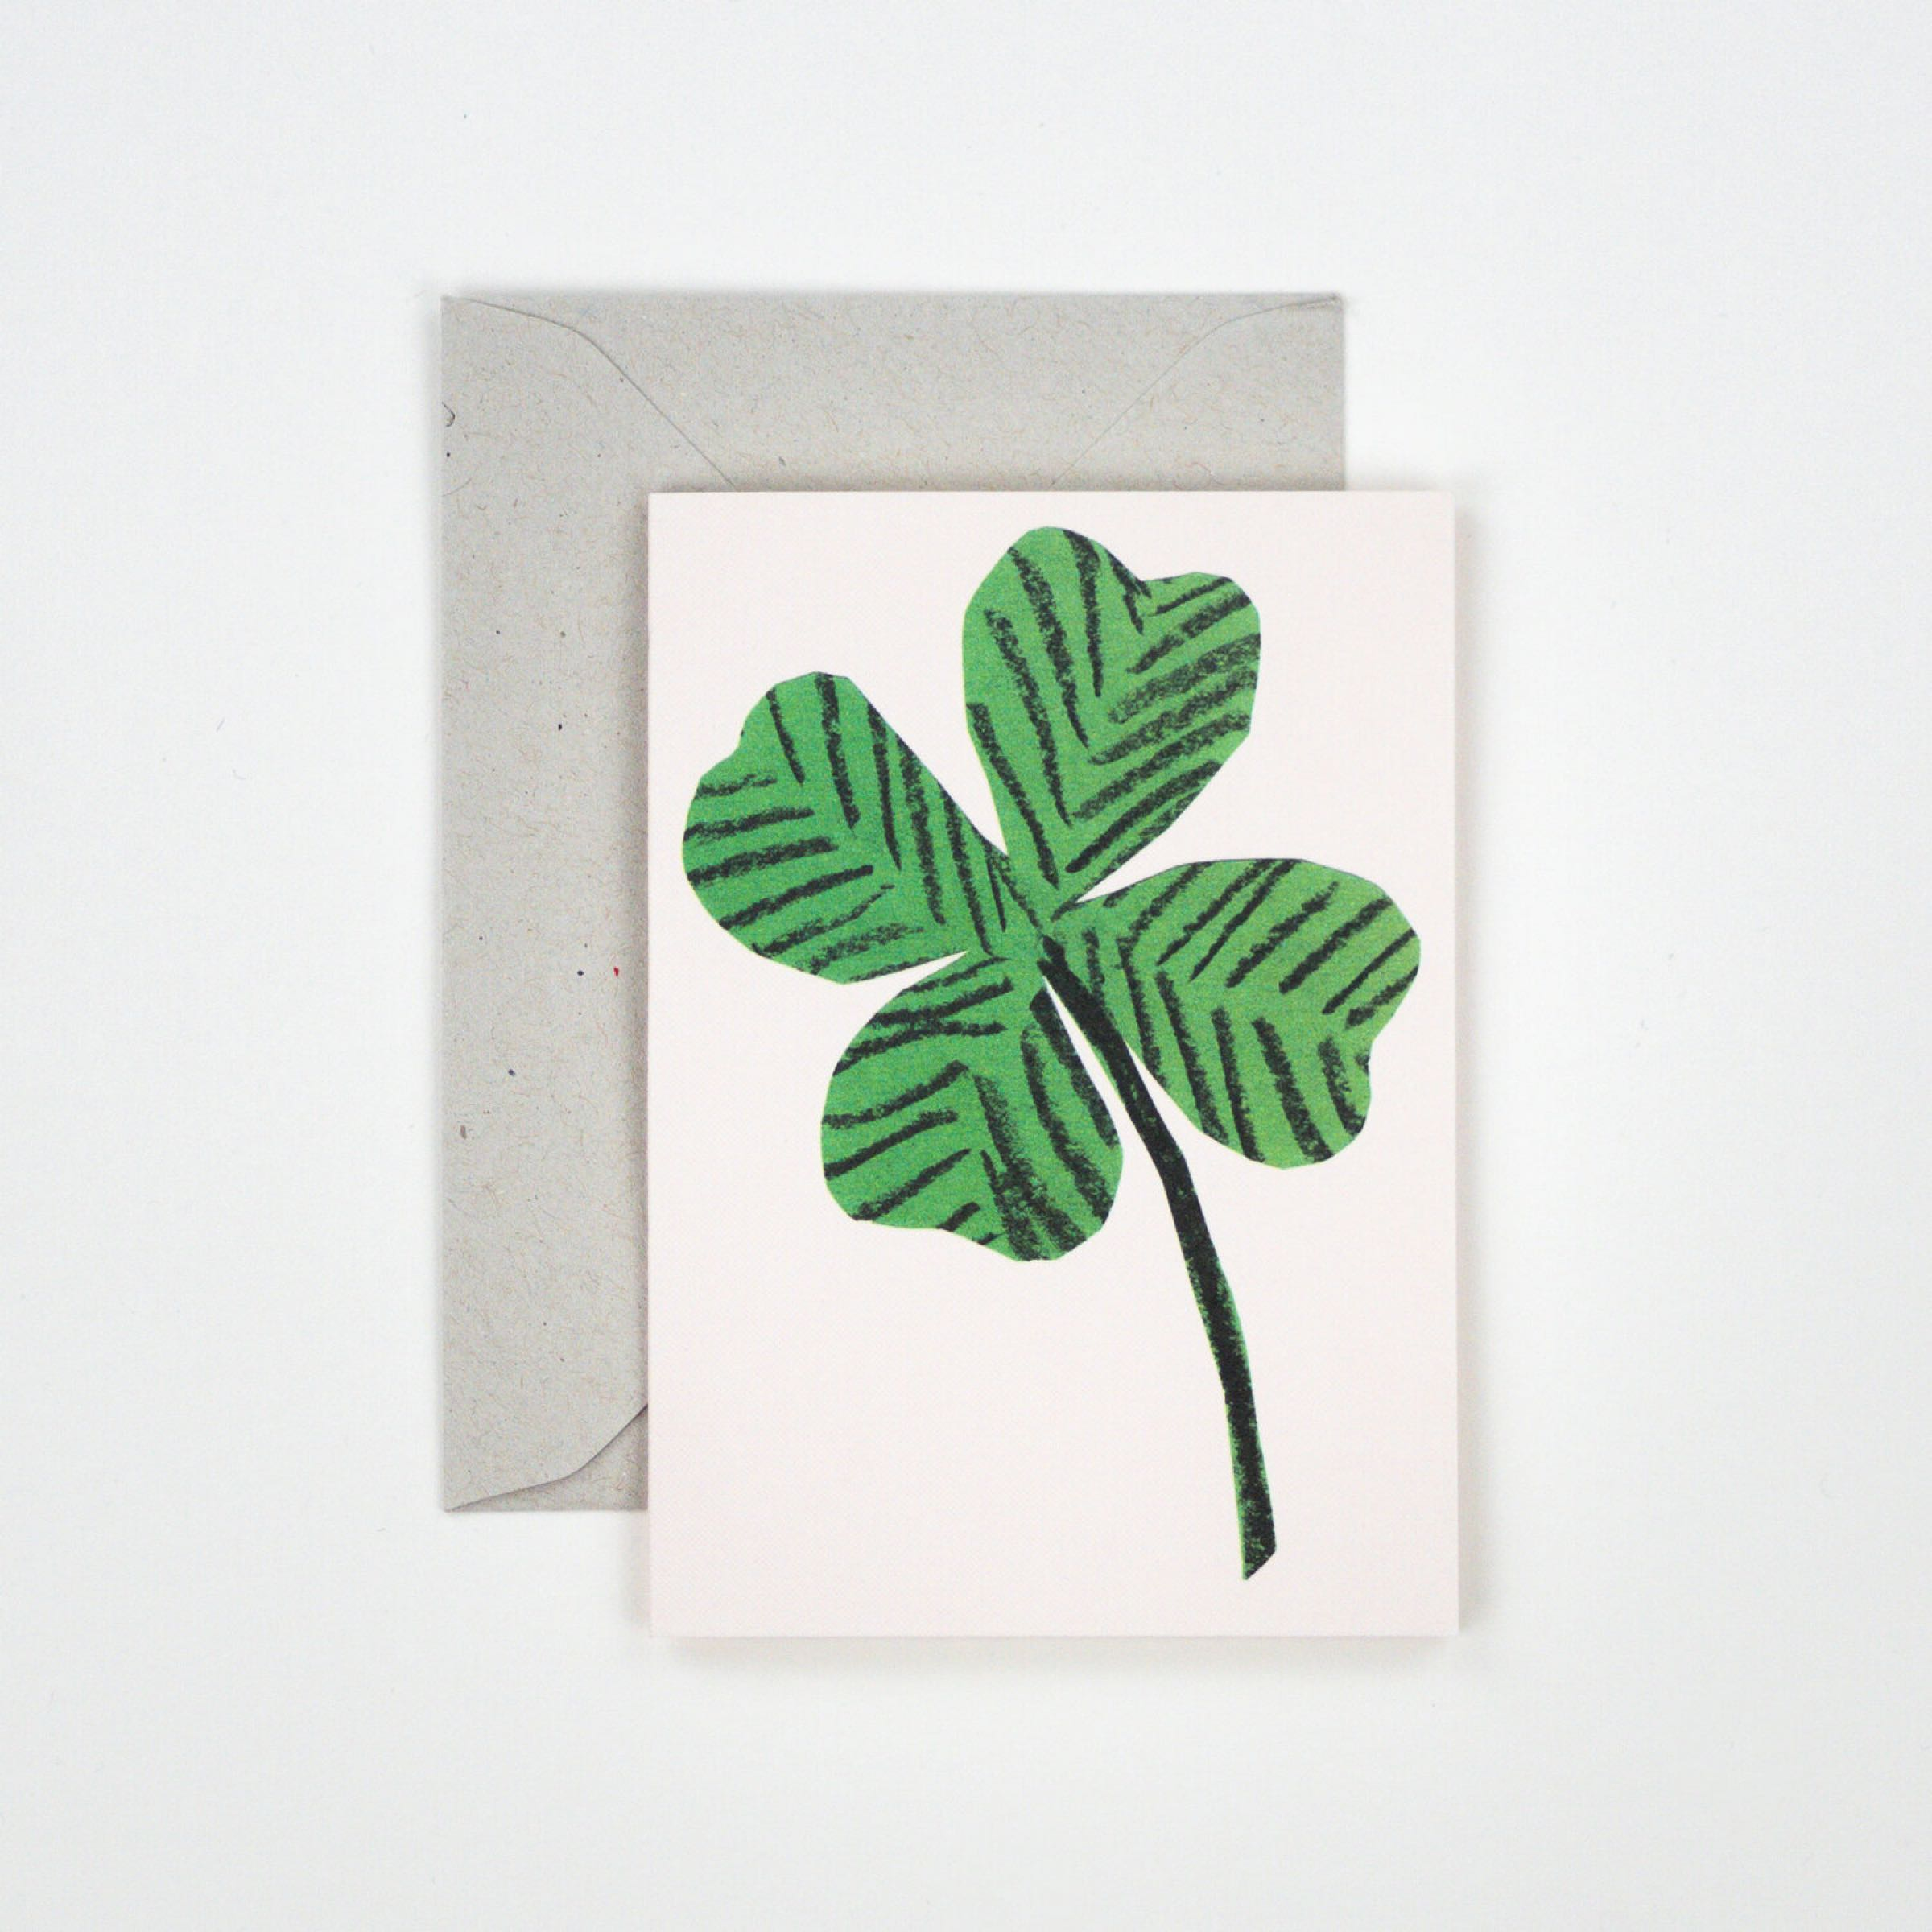 Four Leaf Clover card by Hadley Paper Goods